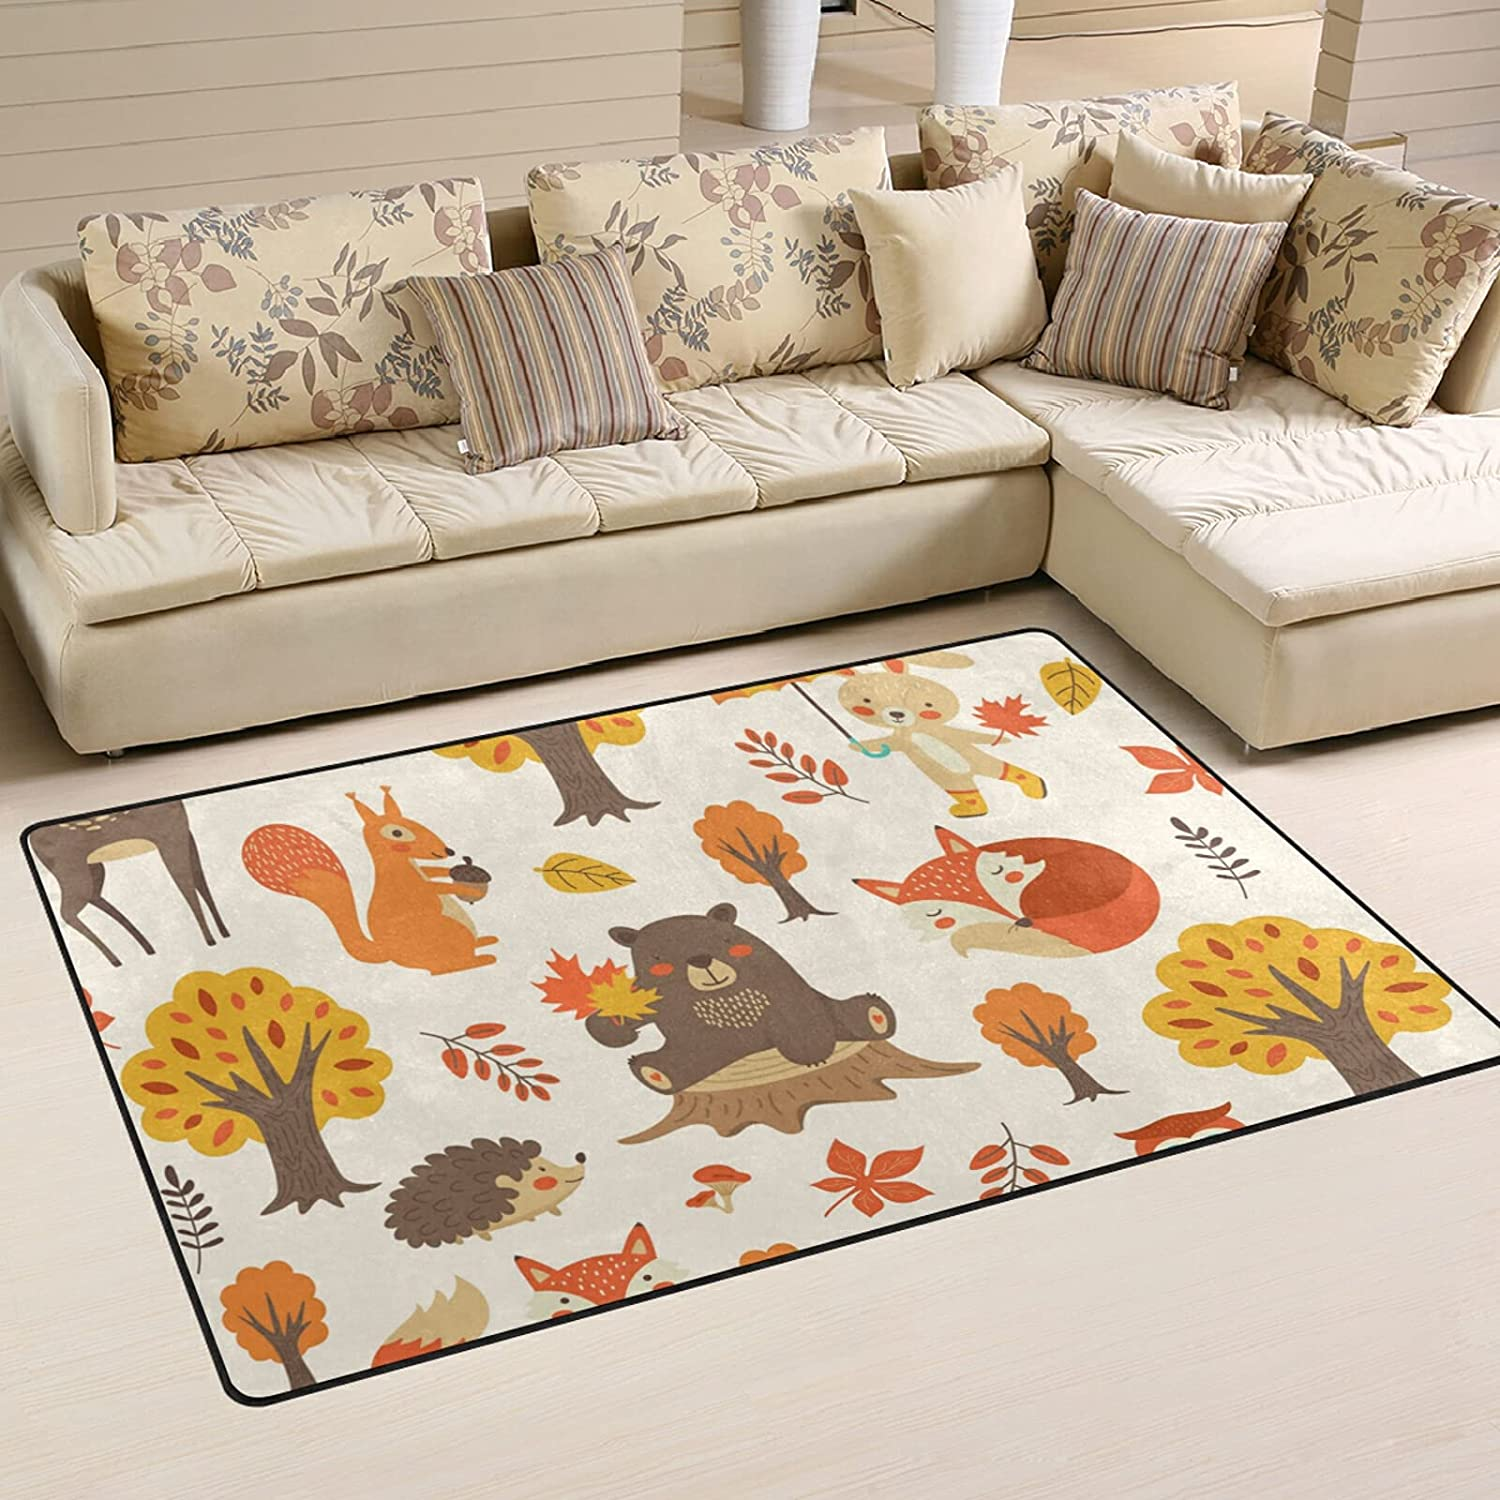 Forest Animals Bear Fox Large Soft Manufacturer OFFicial shop Nursery Rugs Rug Playmat Area High quality